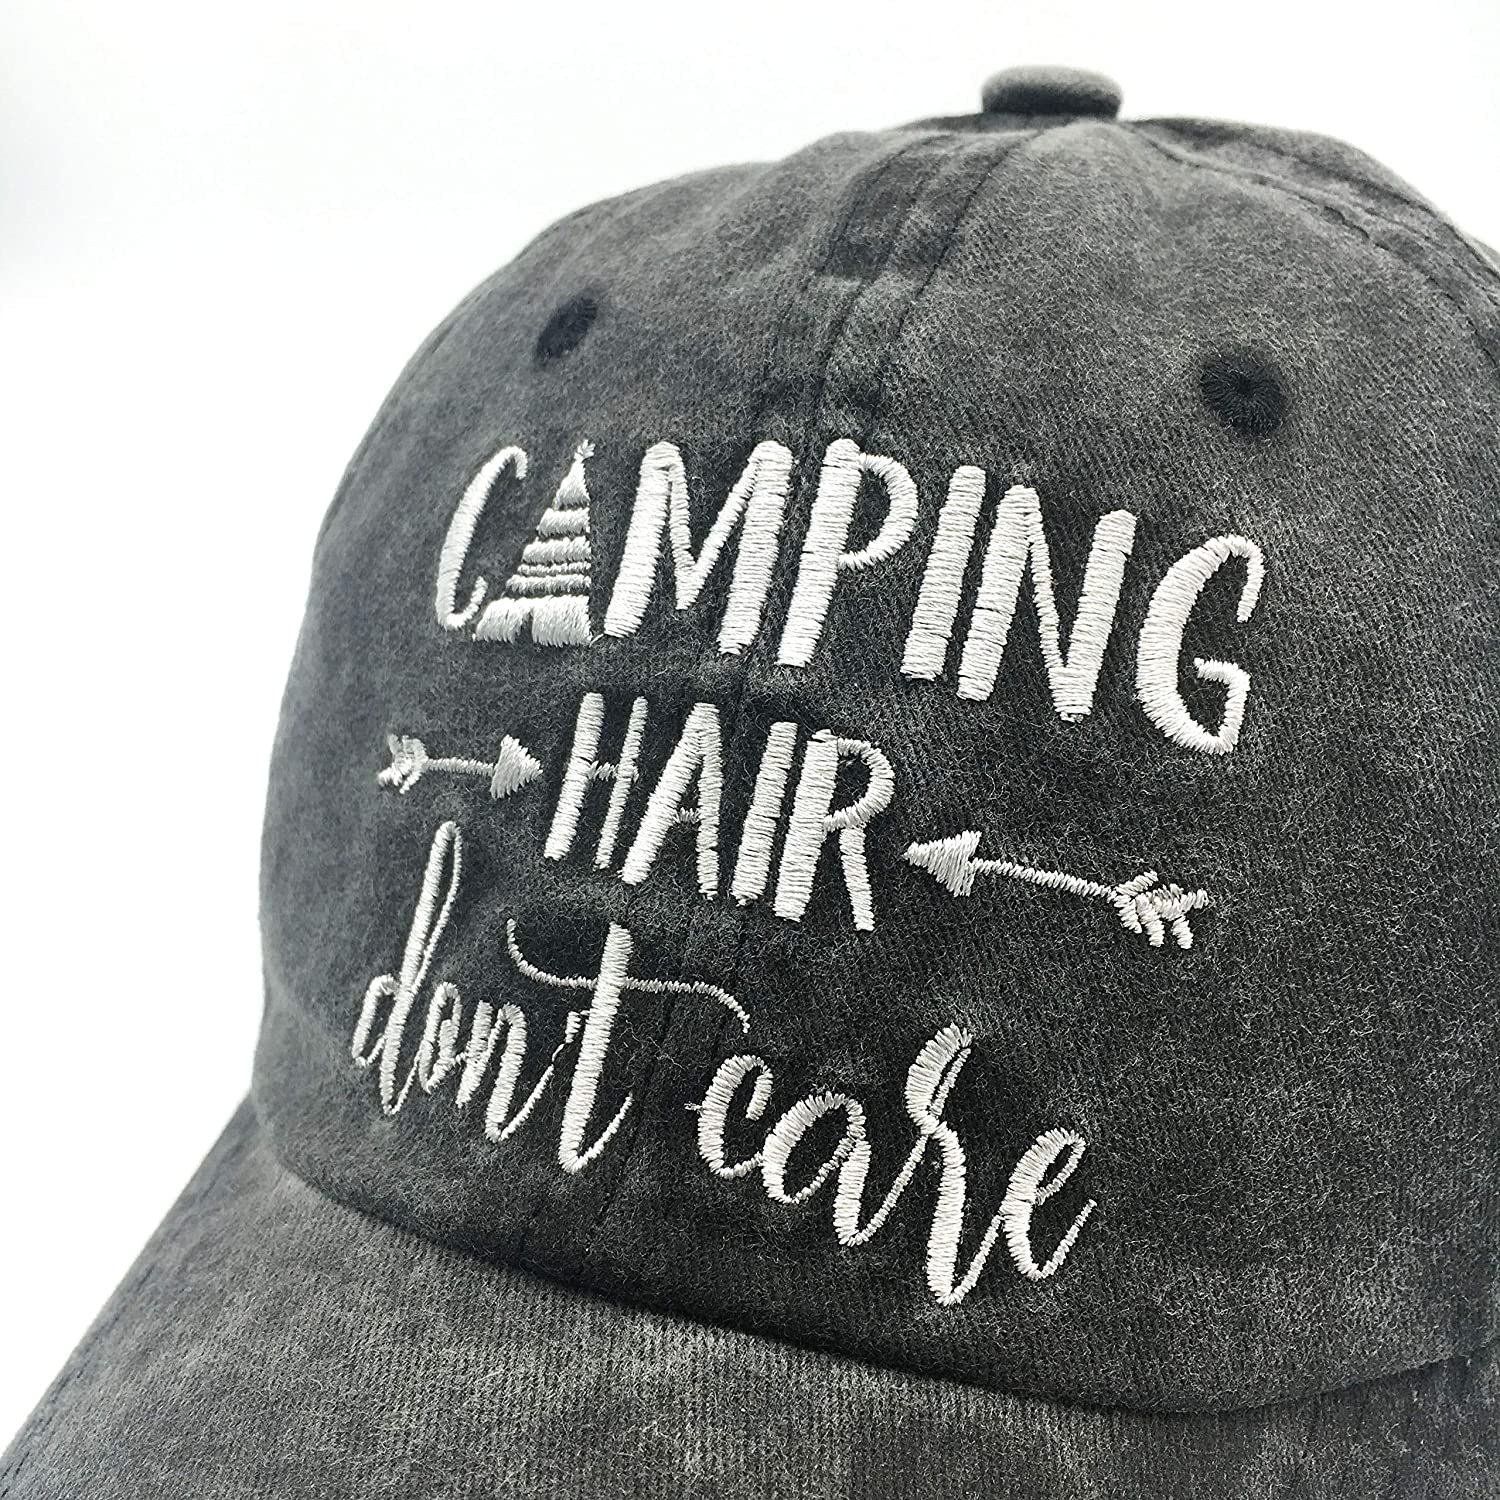 Waldeal Embroidered Camping Hair Don t Care Vintage Washed Cotton Low  Profile Adjustable Dad Hat Black at Amazon Women s Clothing store  b1164f67b03